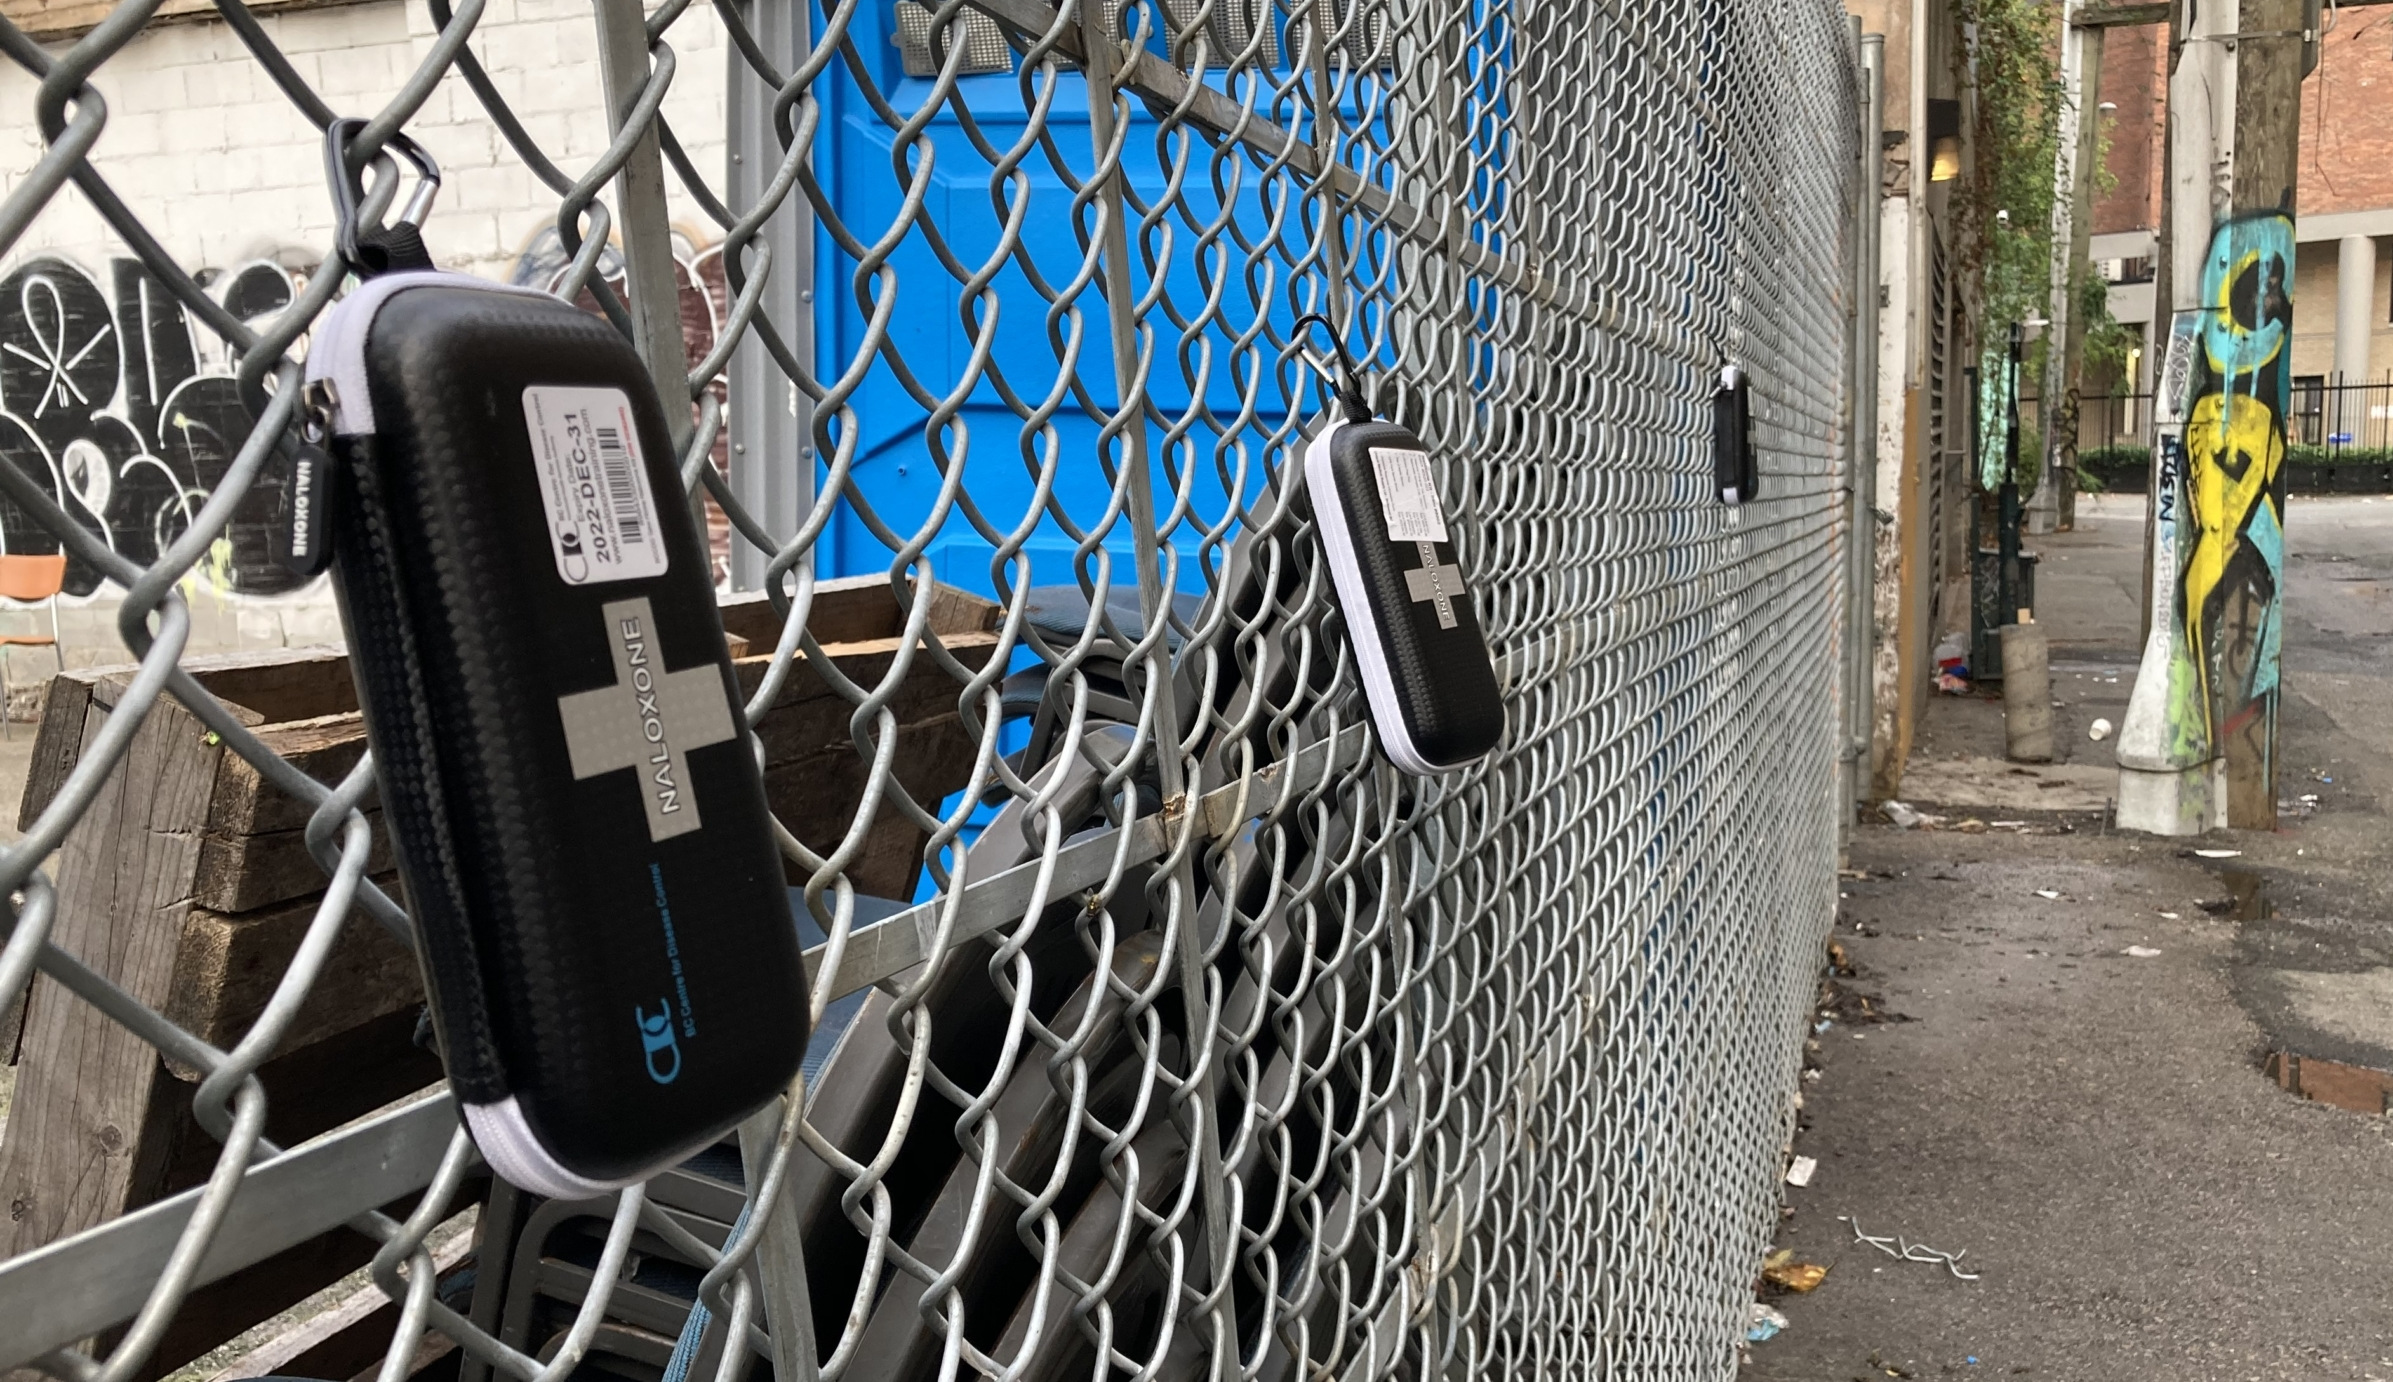 A narcan kit hanging on a chain link fence